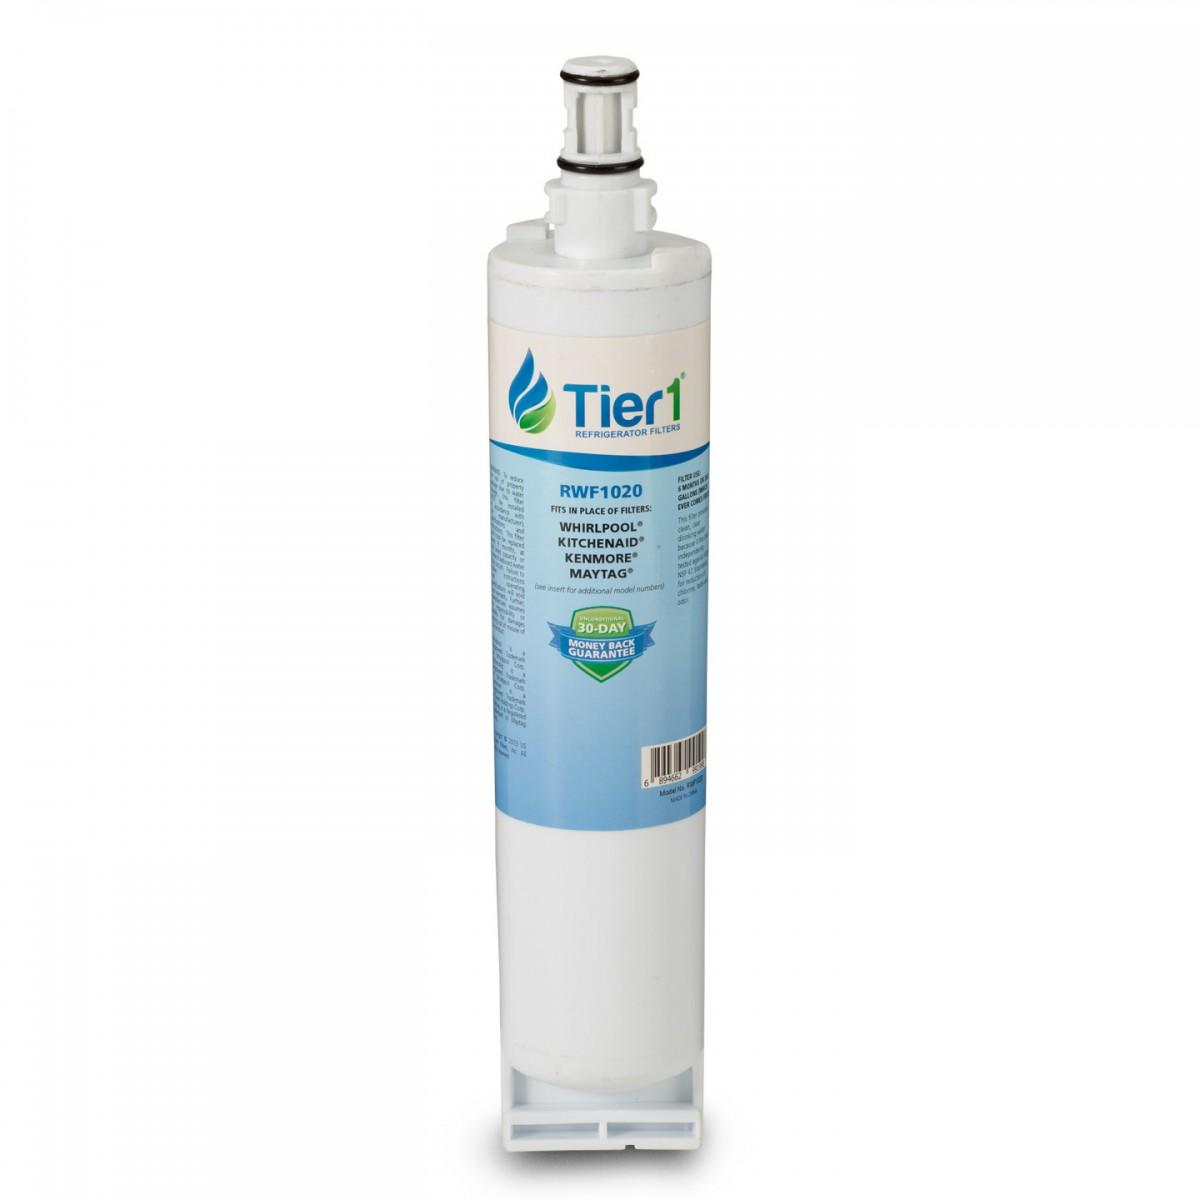 4396510t comparable refrigerator water filter replacement by tier1. Black Bedroom Furniture Sets. Home Design Ideas